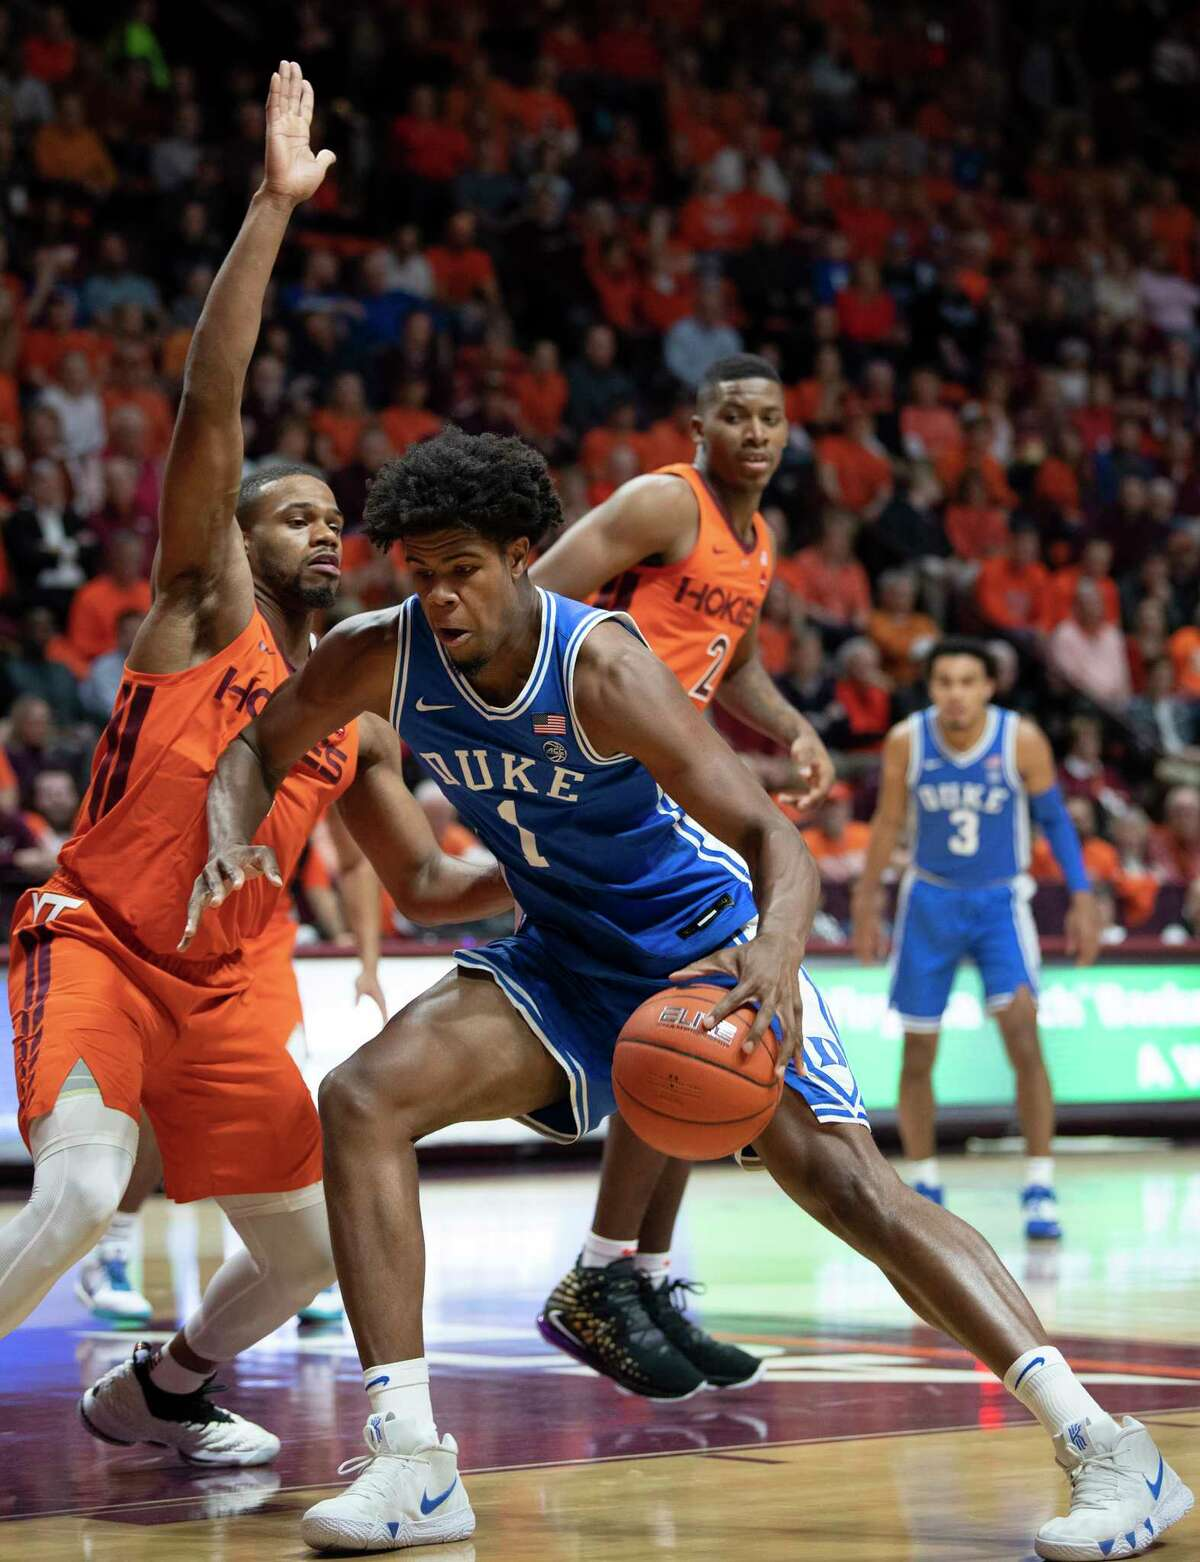 Duke center Vernon Carey Jr. (1) drives against Virginia Tech forward P.J. Horne, left, during the first half of an NCAA college basketball game Friday, Dec. 6, 2019, in Blacksburg, Va. (AP Photo/Don Petersen)